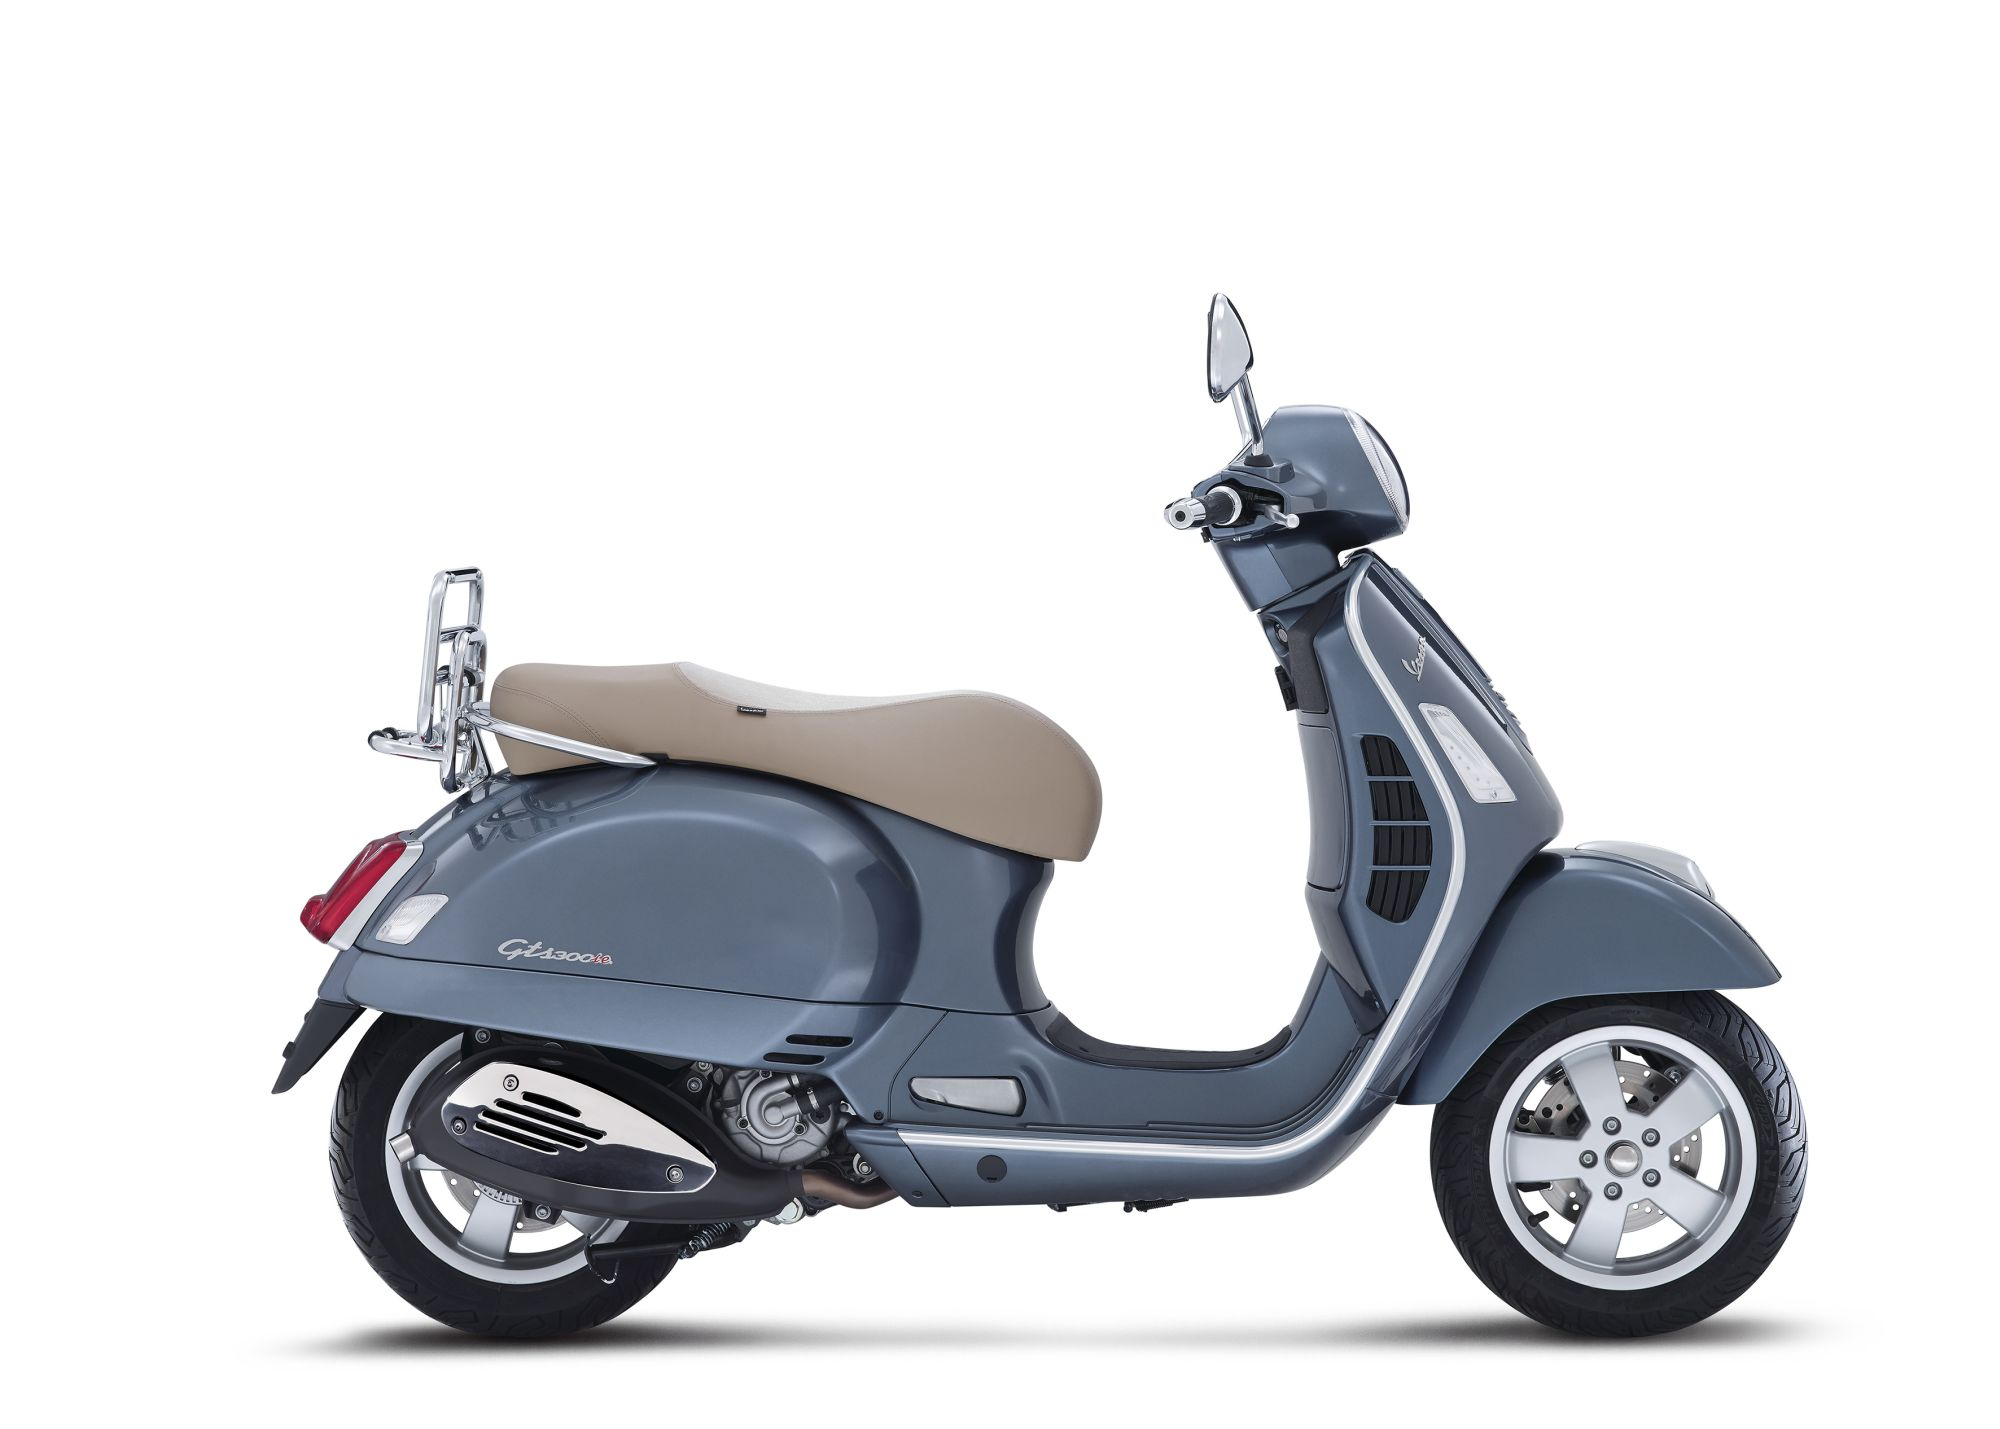 gebrauchte vespa gts 125 i e motorr der kaufen. Black Bedroom Furniture Sets. Home Design Ideas